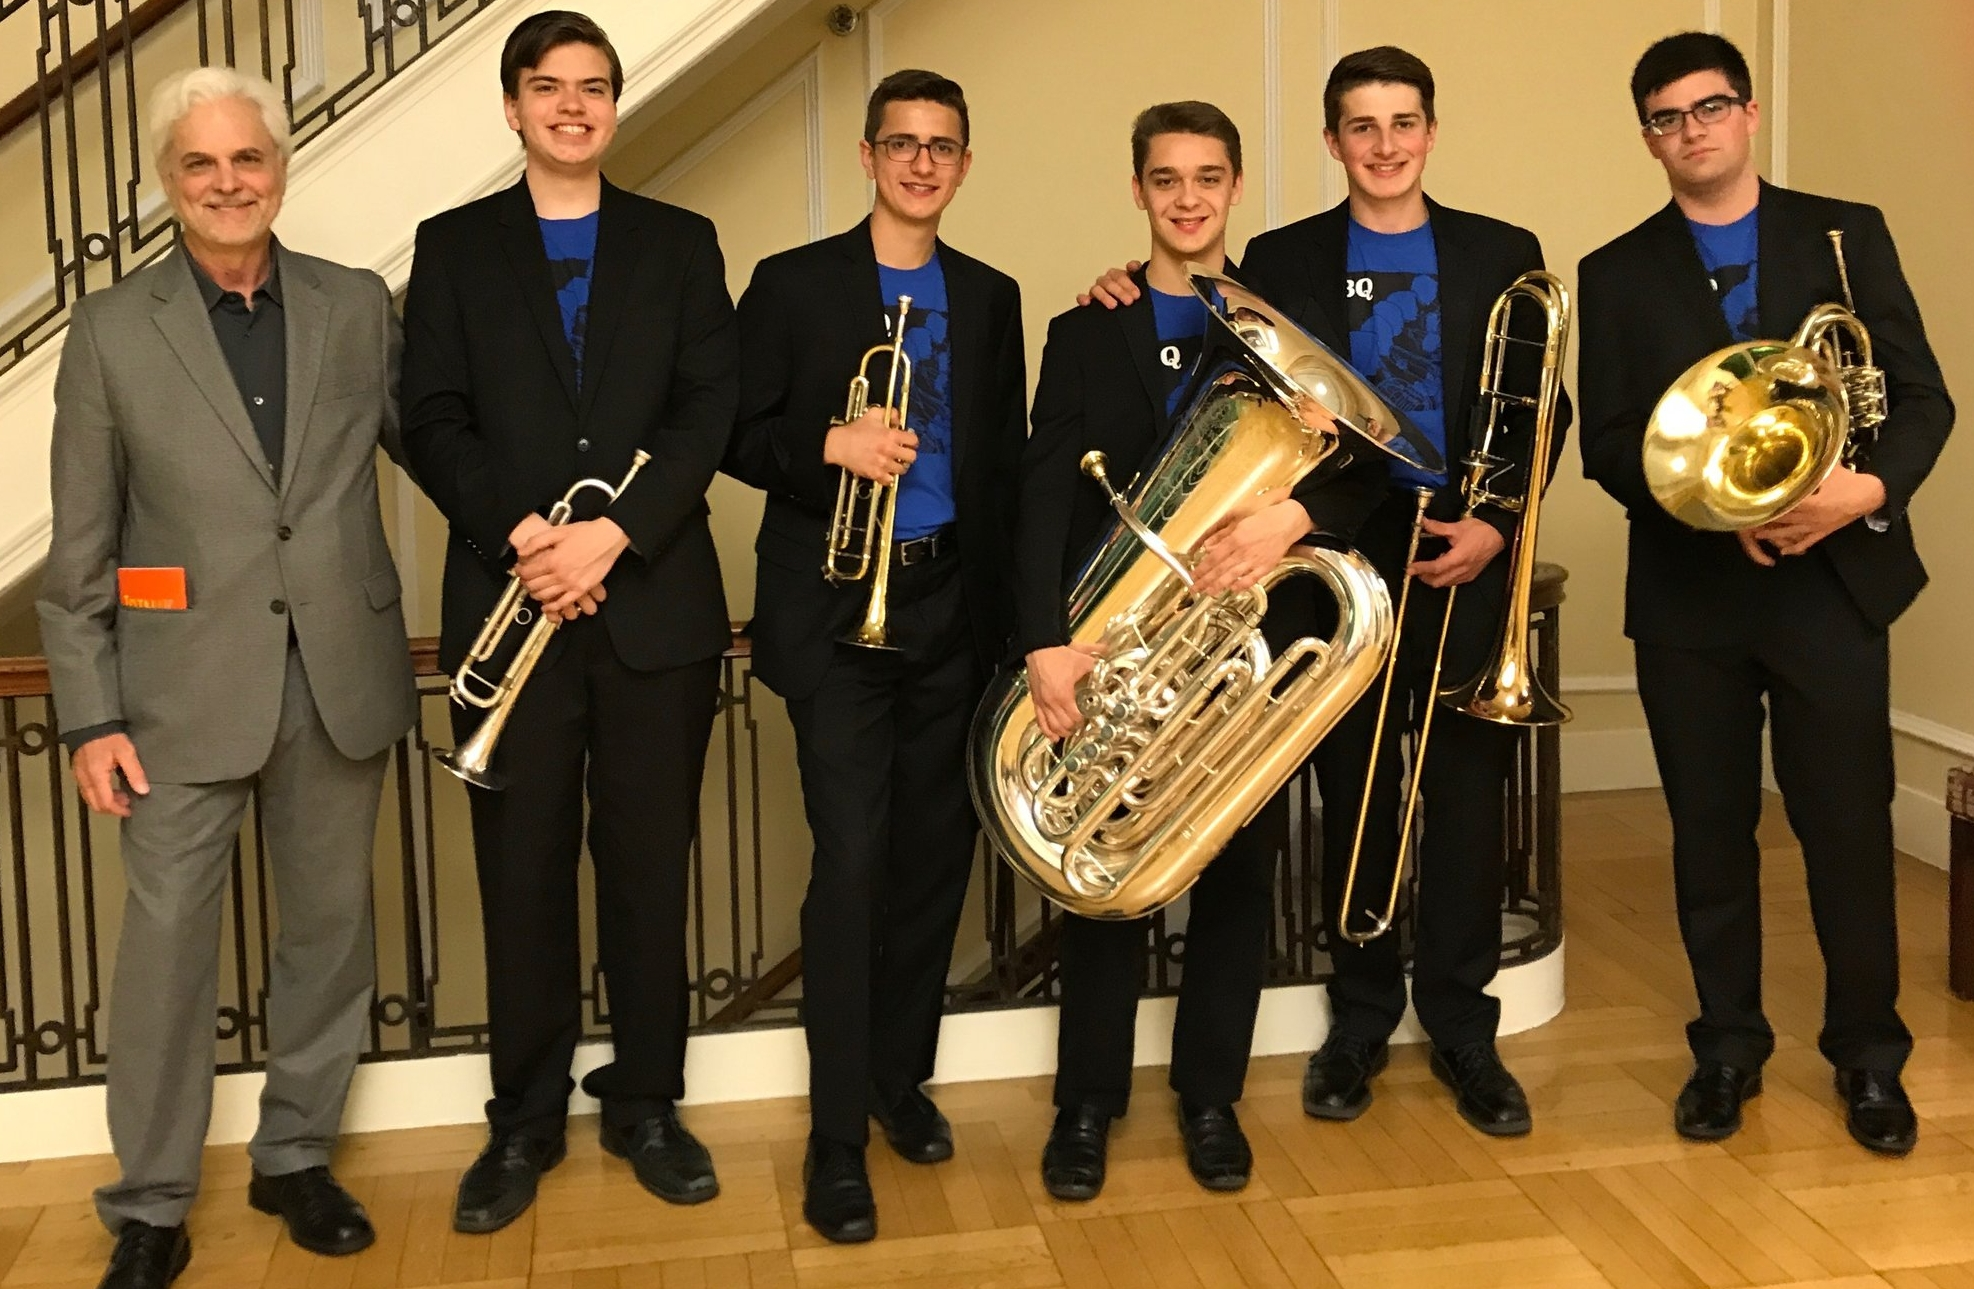 Jim with NEC Prep Honors Brass Quintet before their concert.